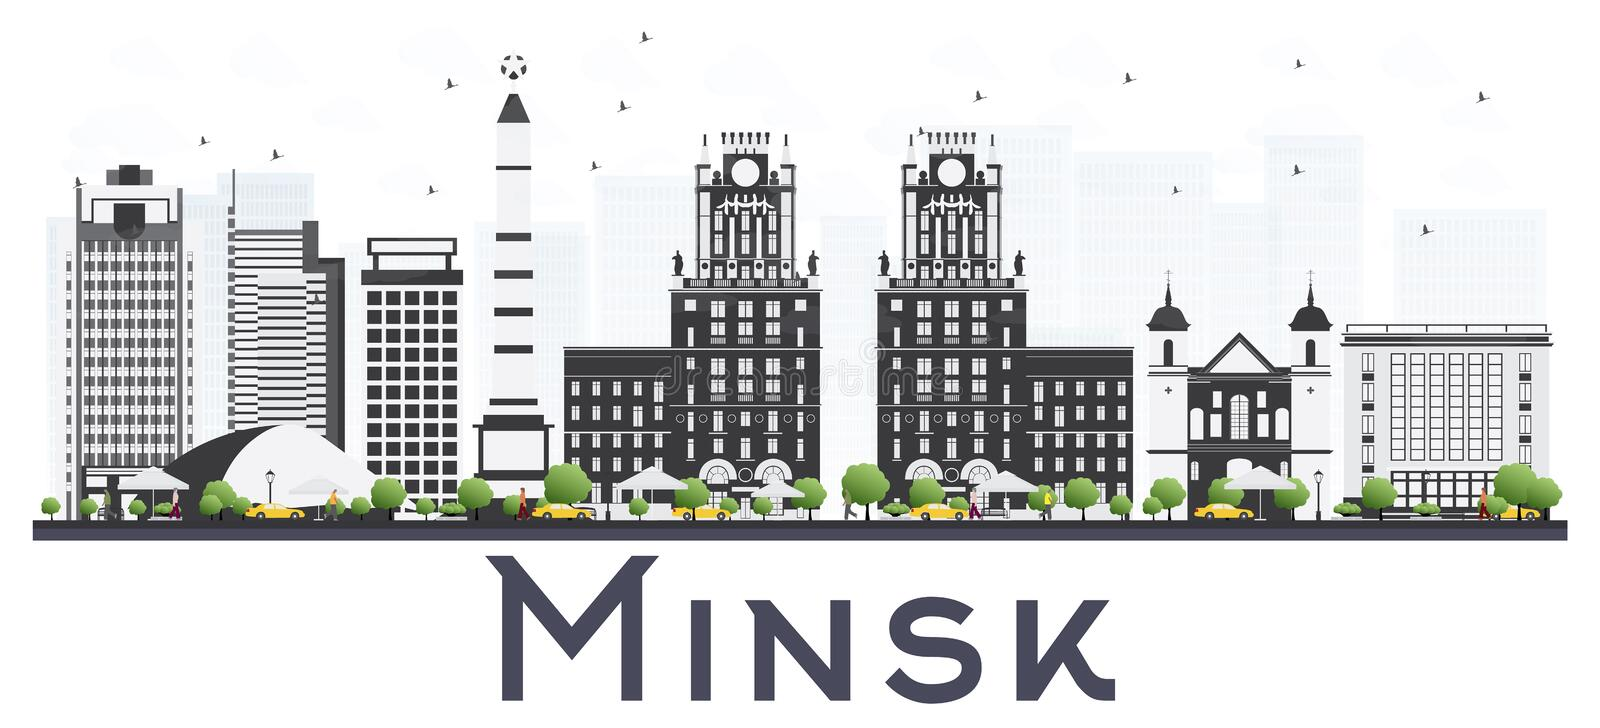 Minsk Vitryssland stadshorisont med Gray Buildings Isolated på vit vektor illustrationer